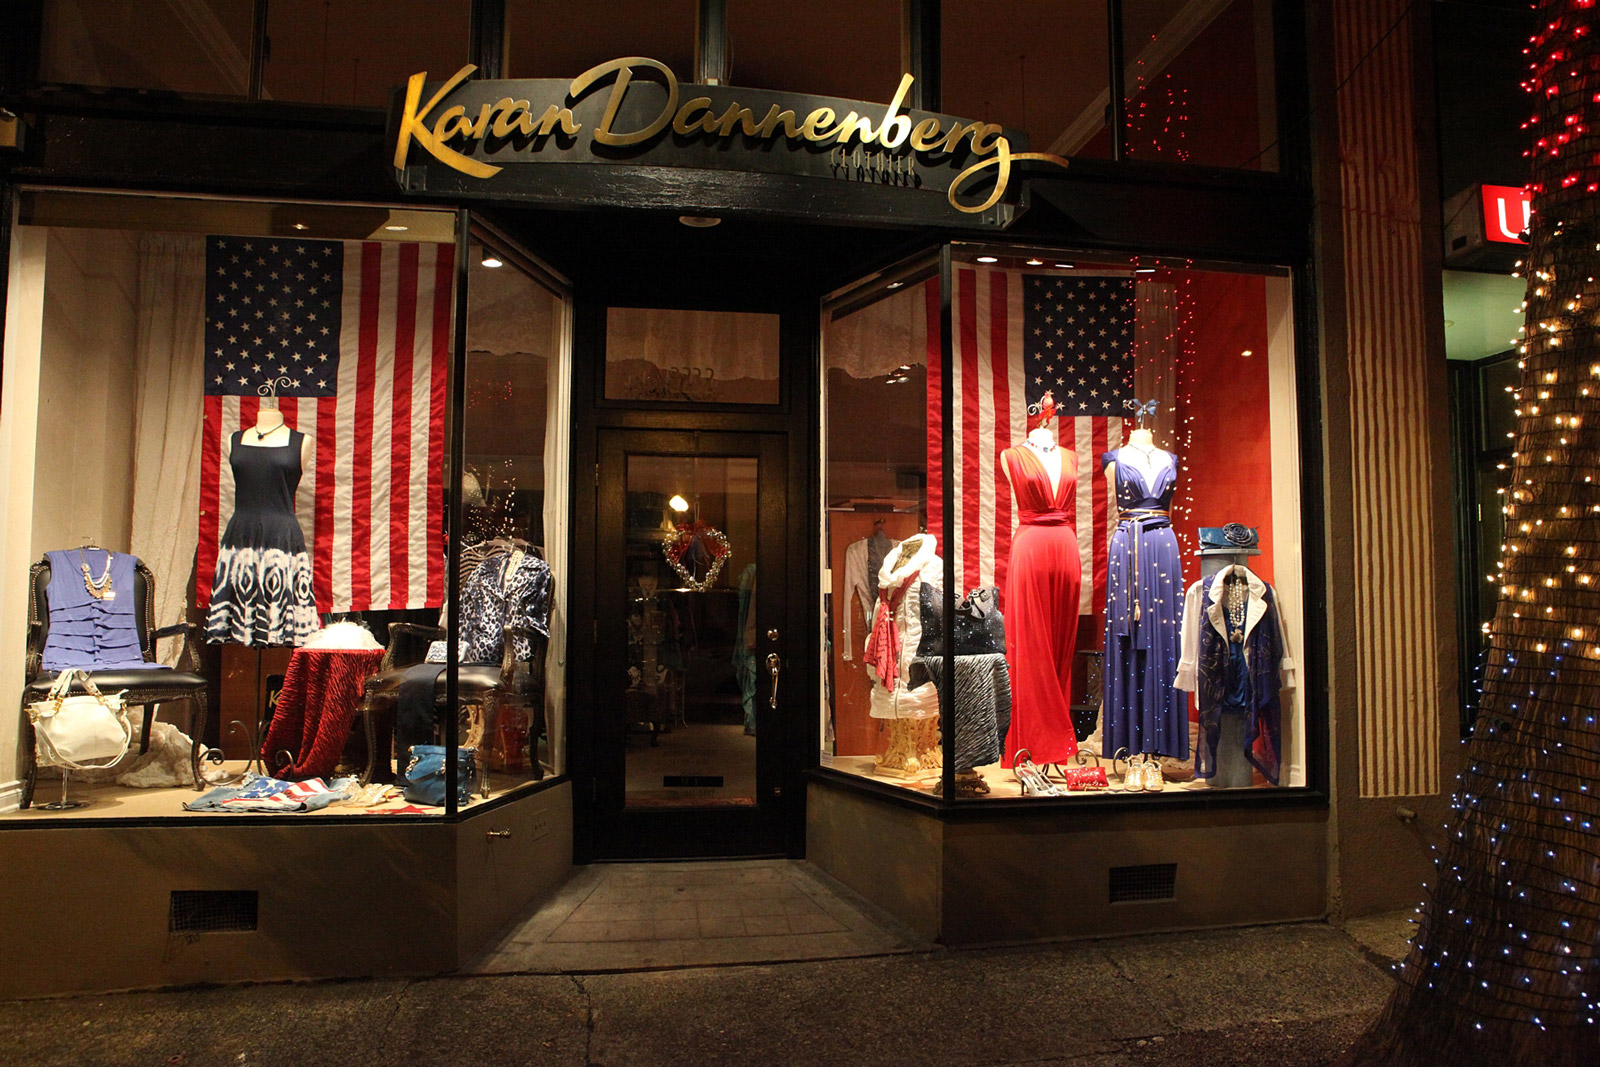 Men's shirts, jeans and patriotic colours in one window display are proof that 4th of july is near the corner.